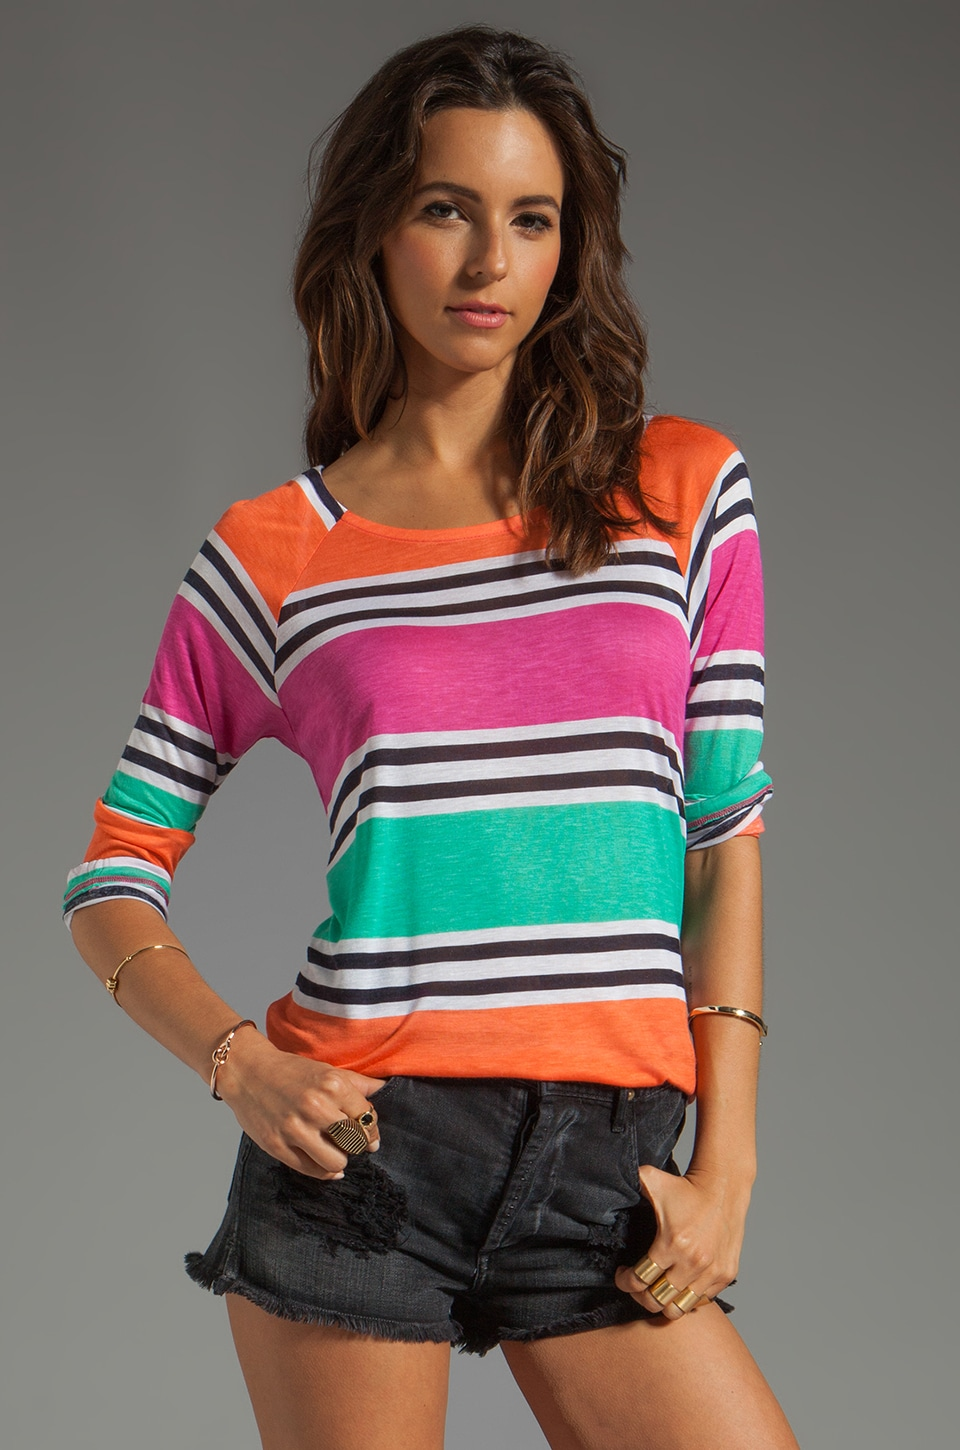 Splendid Cabana Stripe Top in Parfait